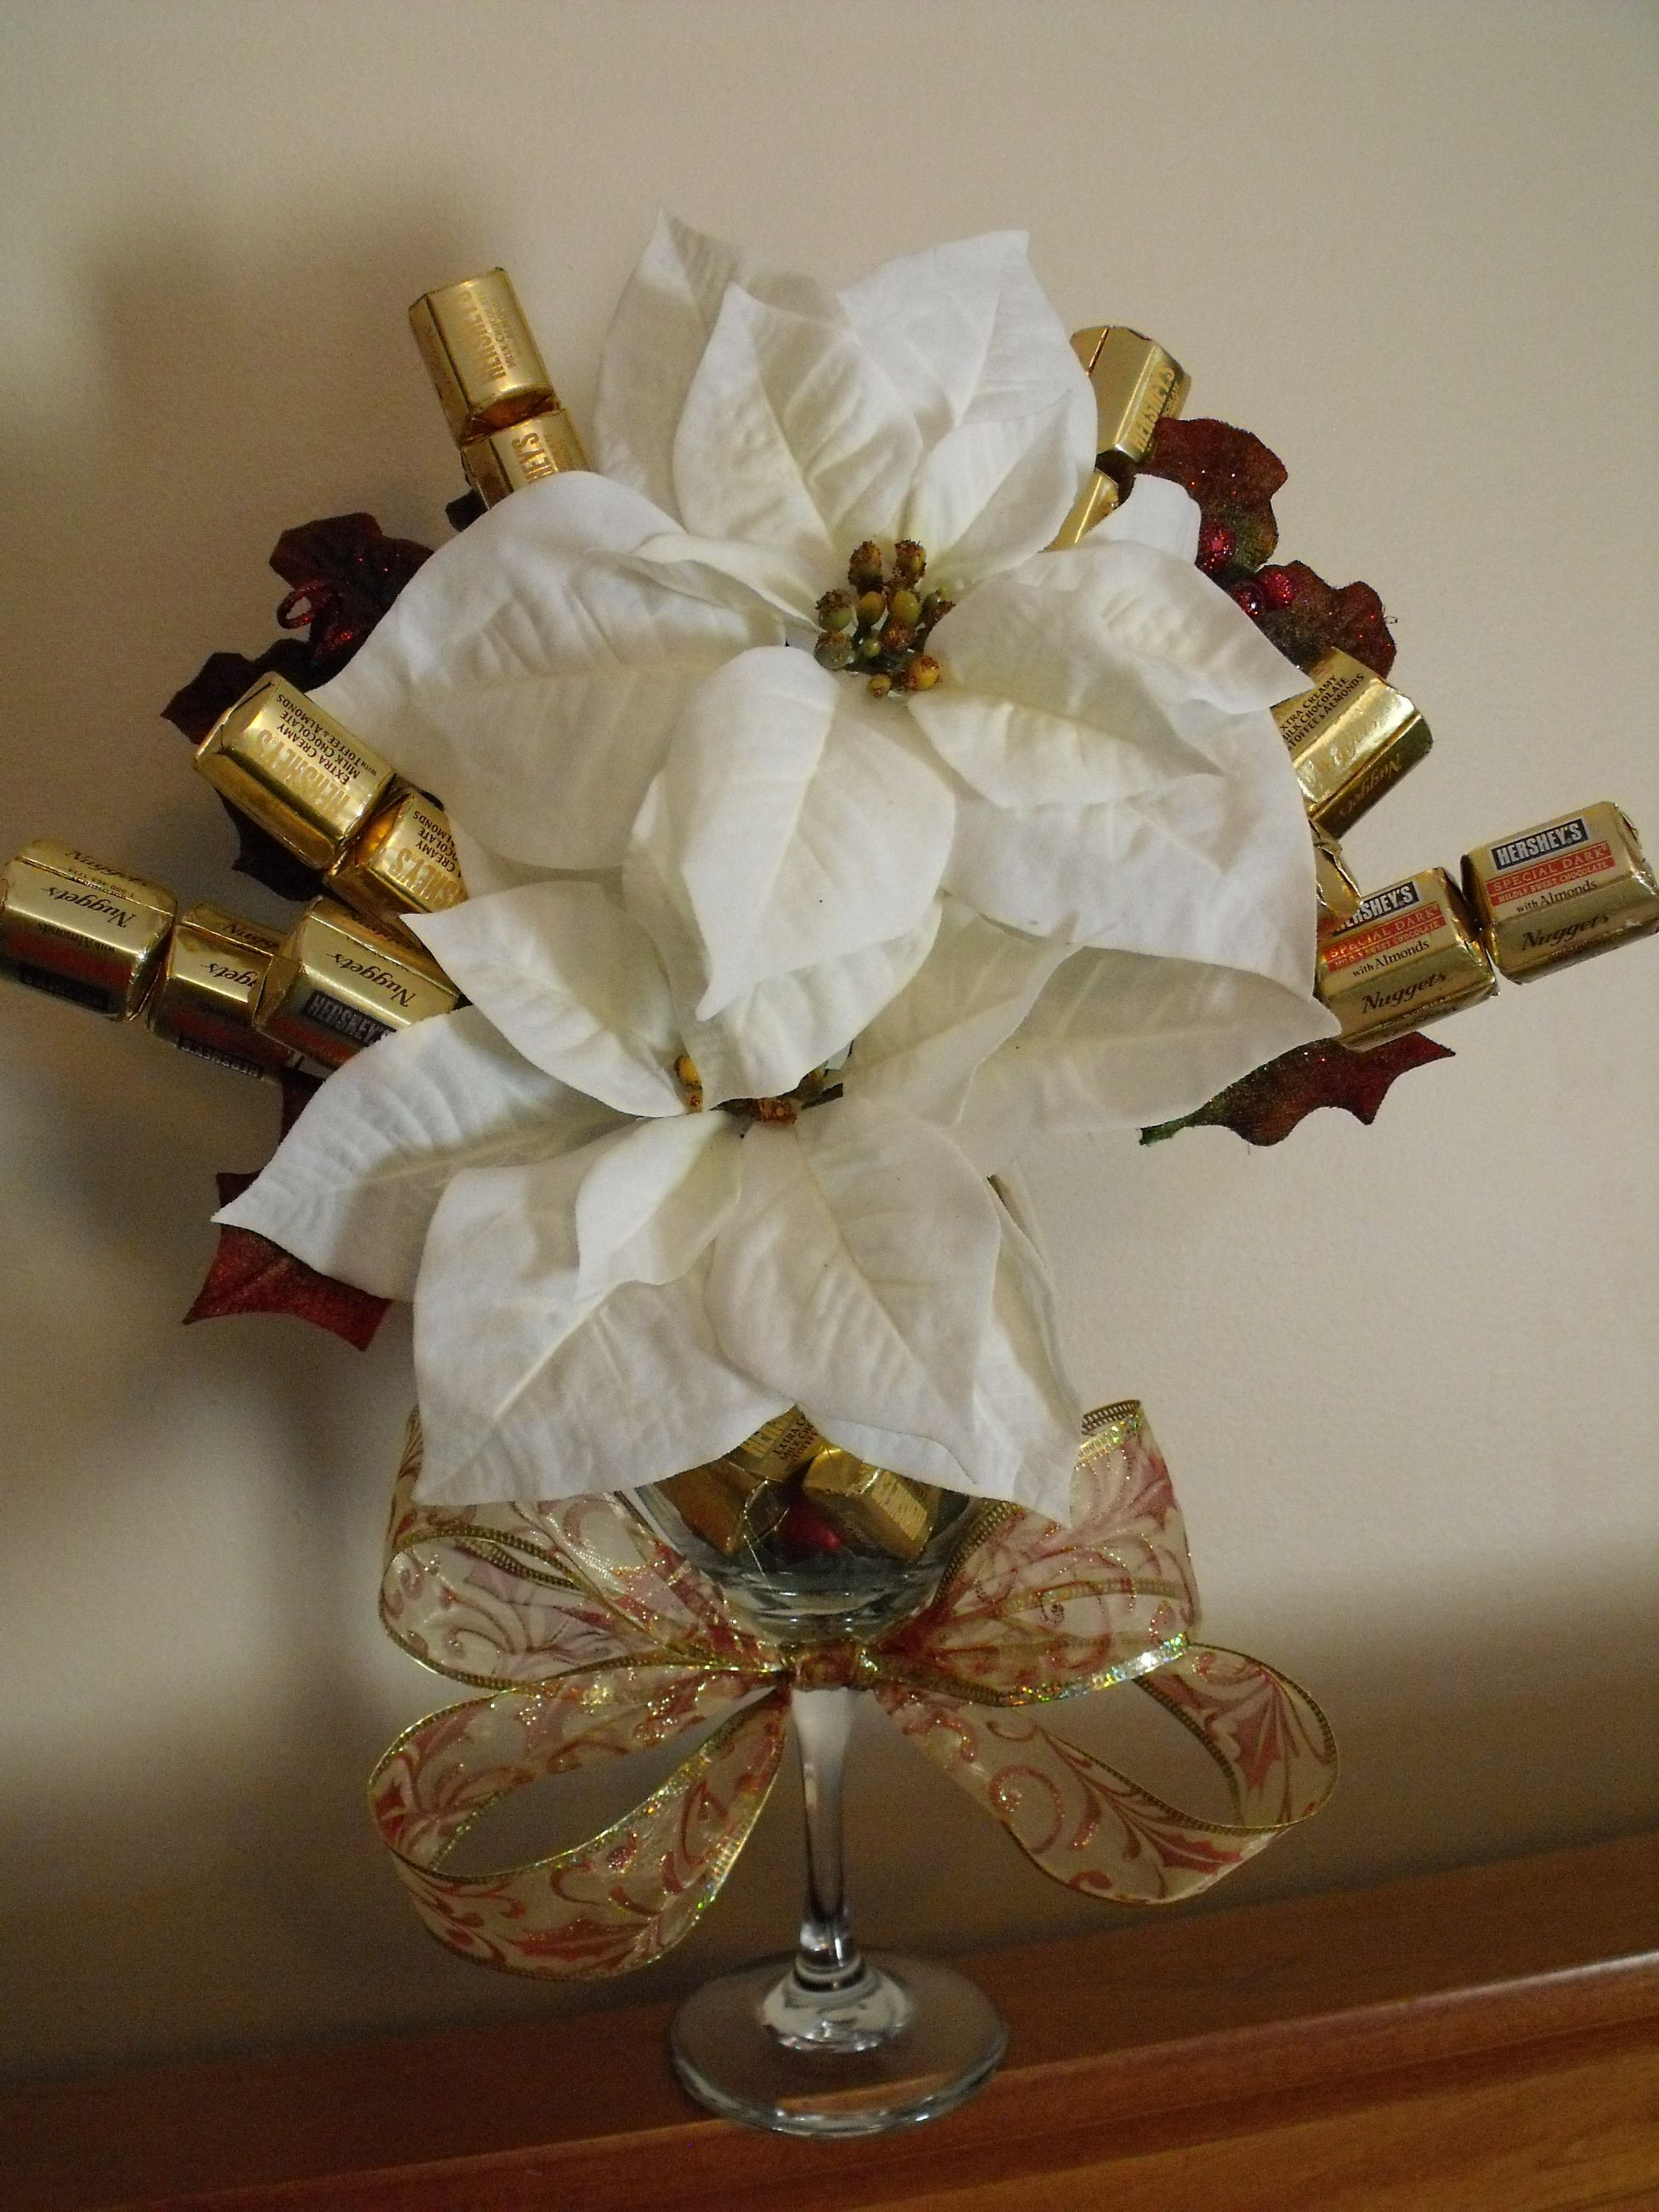 Chocolate bouquet on pinterest candy flowers bouquet of chocolate - Directions To Make A Poinsetta Chocolate Bouquet In A Wine Glass Nice Little Gift